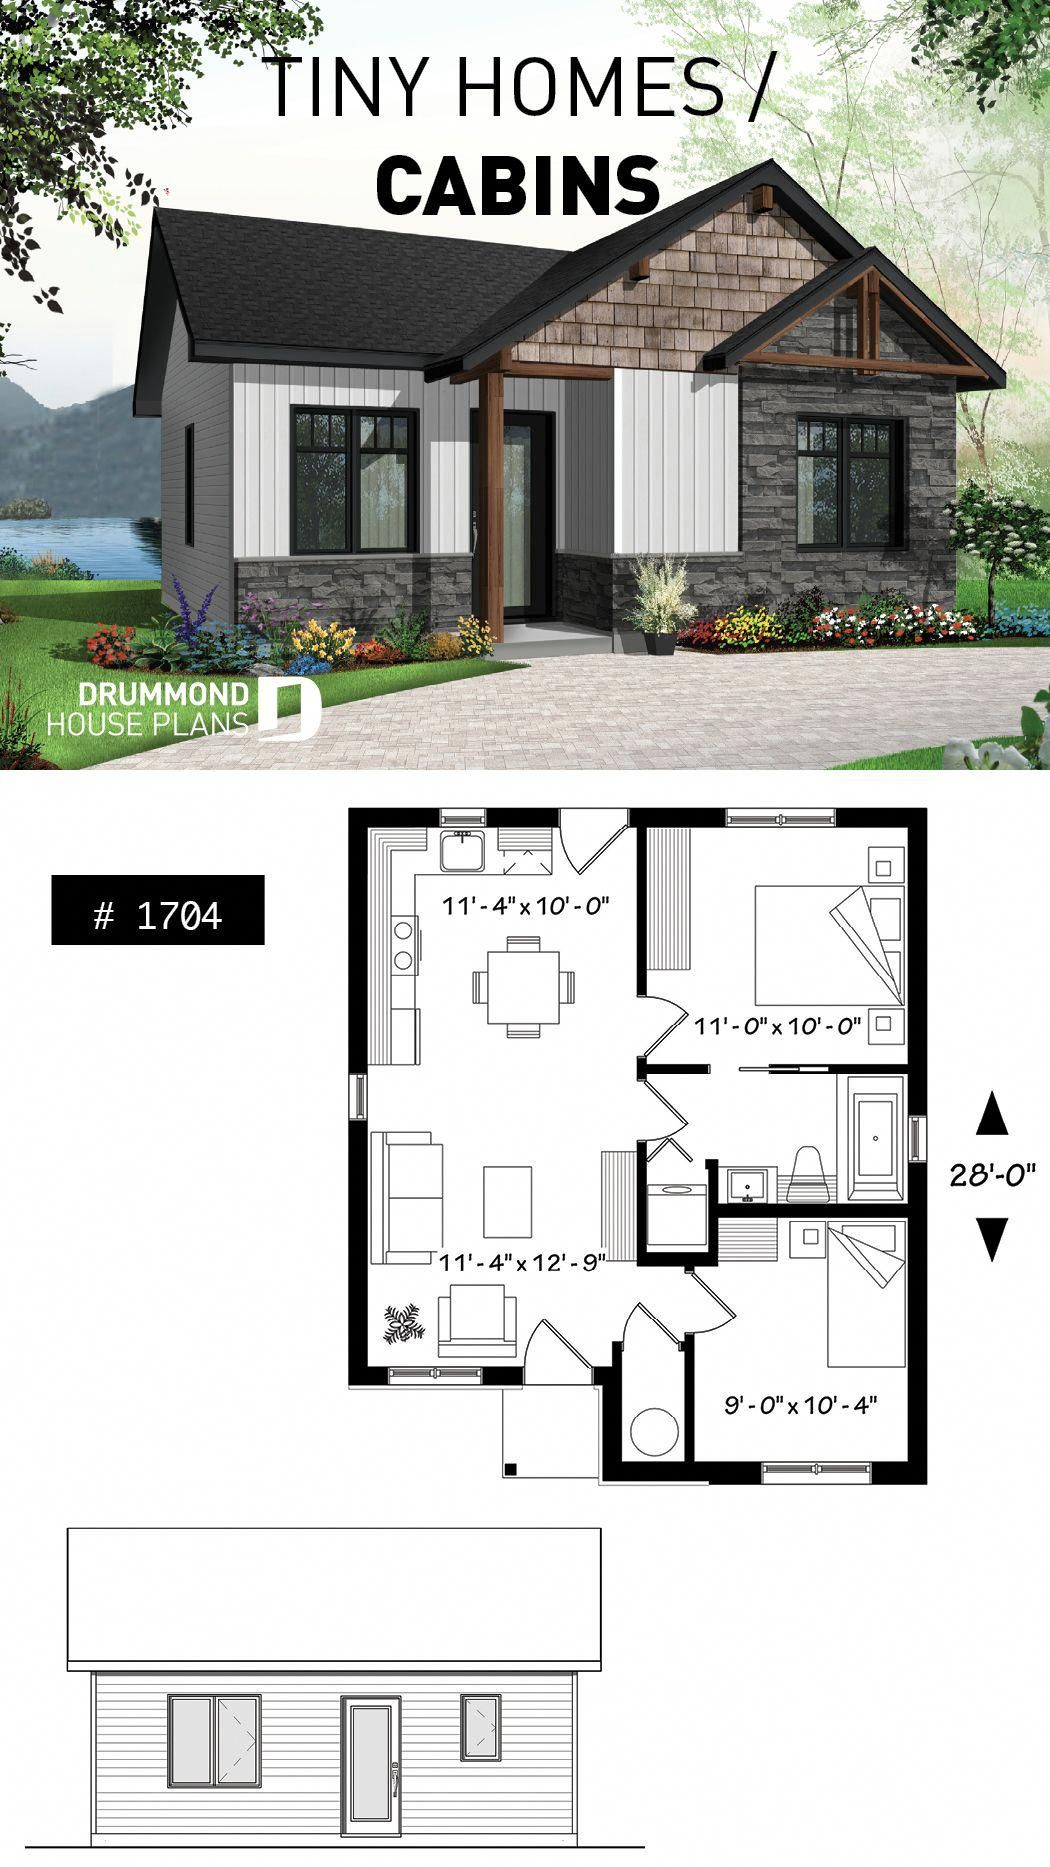 Contemporary Rustic Home Scandinavian Inspired Low Building Costs Ideal For First Home Buyers 2 Bedrooms F Small Rustic House House Plans Tiny House Cabin